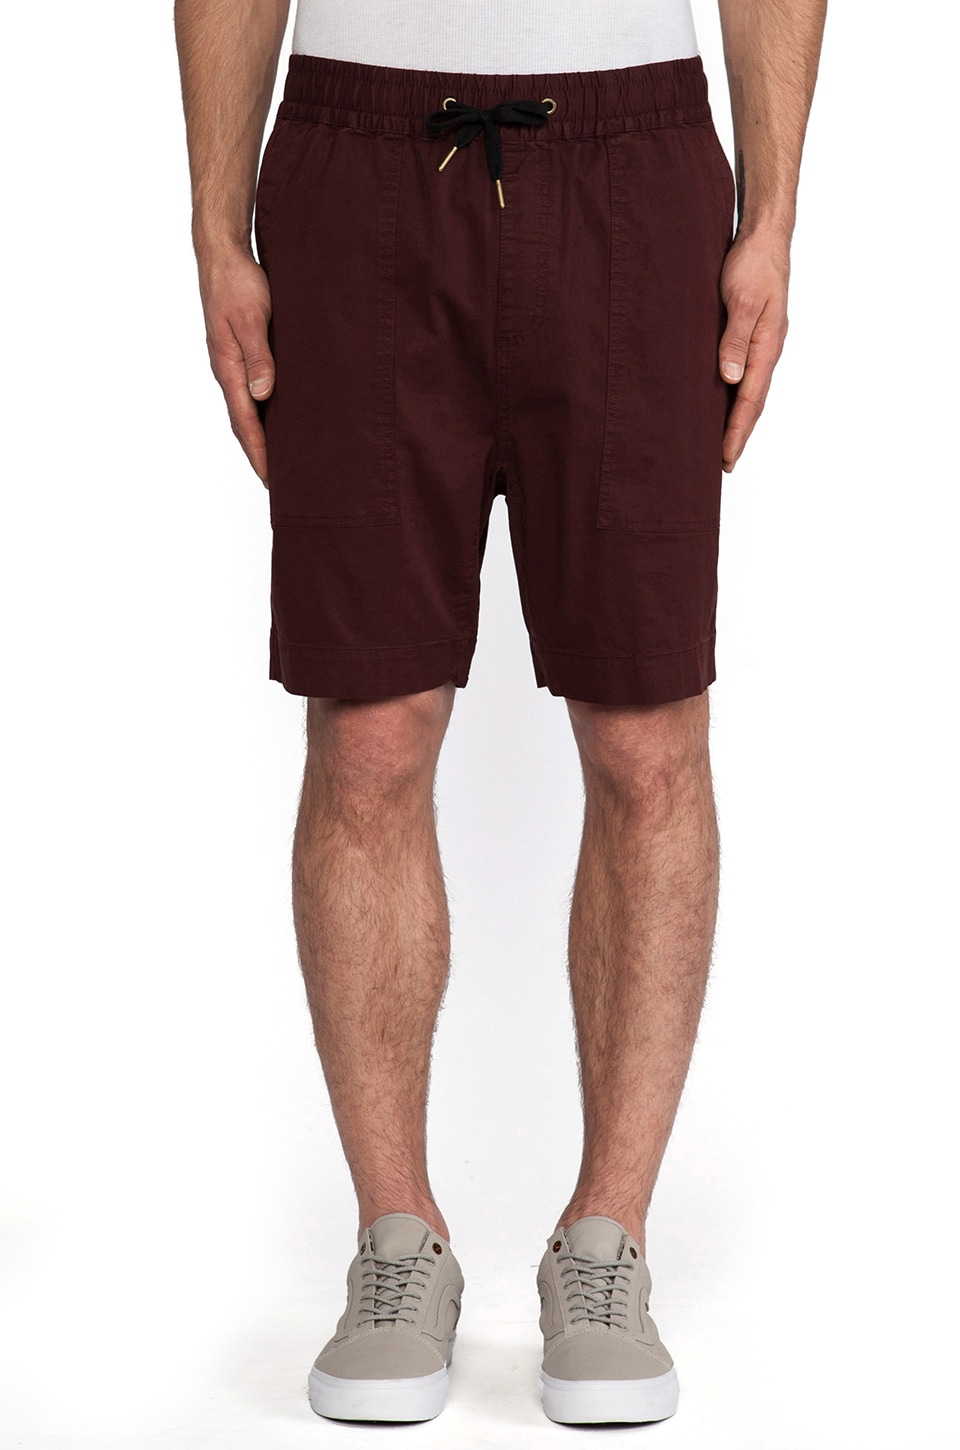 Zanerobe Gabe Short in Burgundy